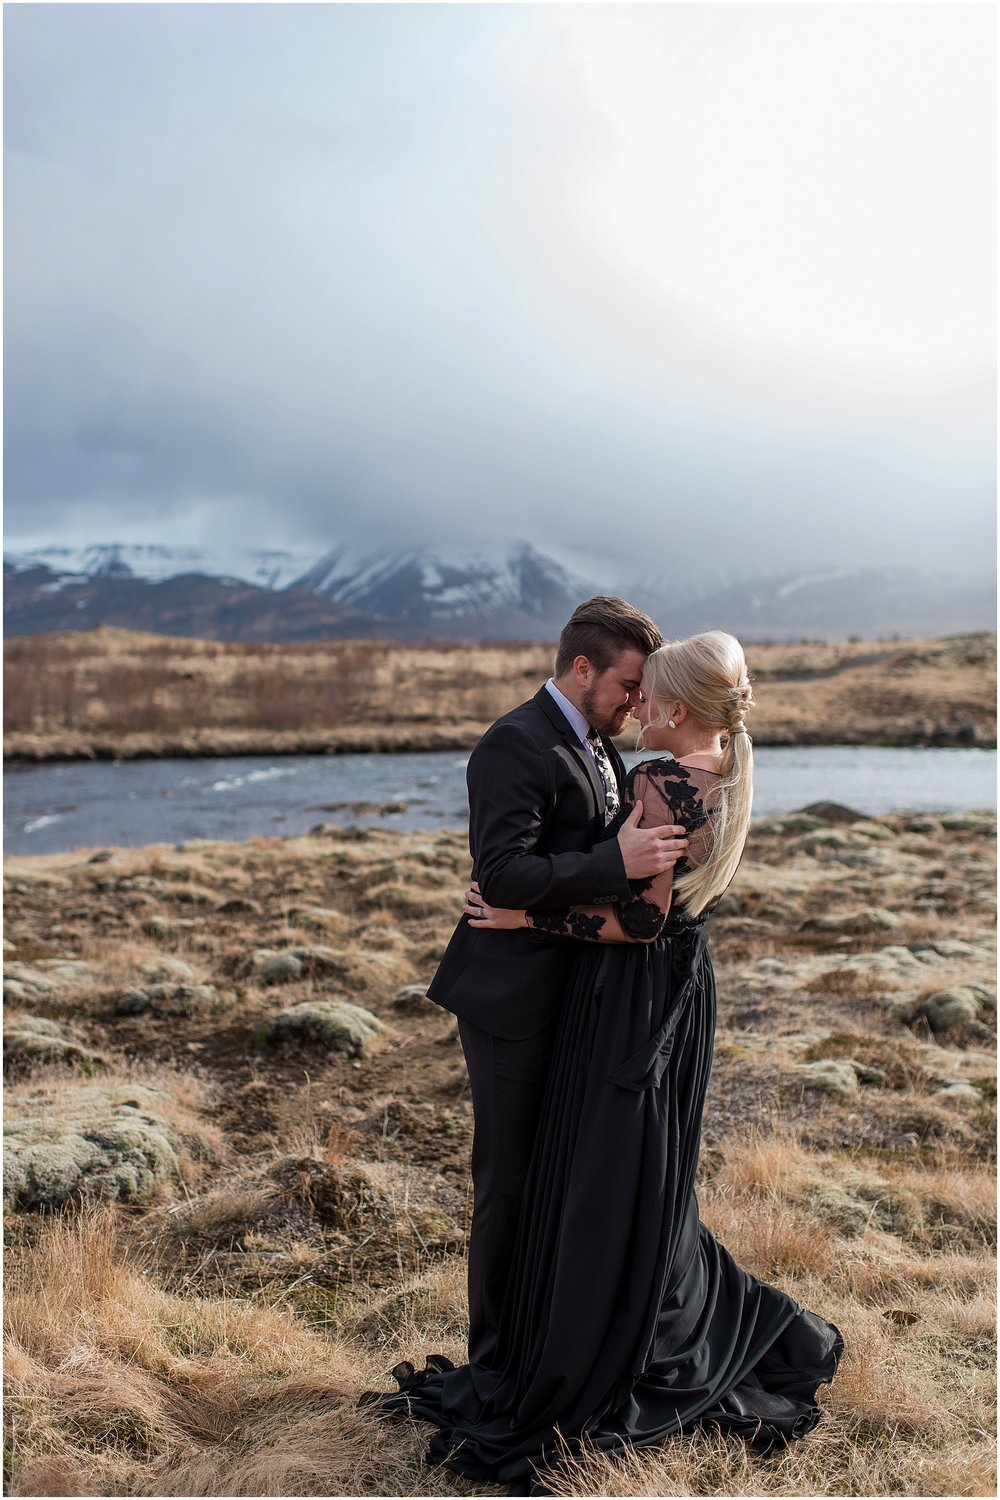 Hannah Leigh Photography Black Wedding Dress Iceland Elopement_2422.jpg